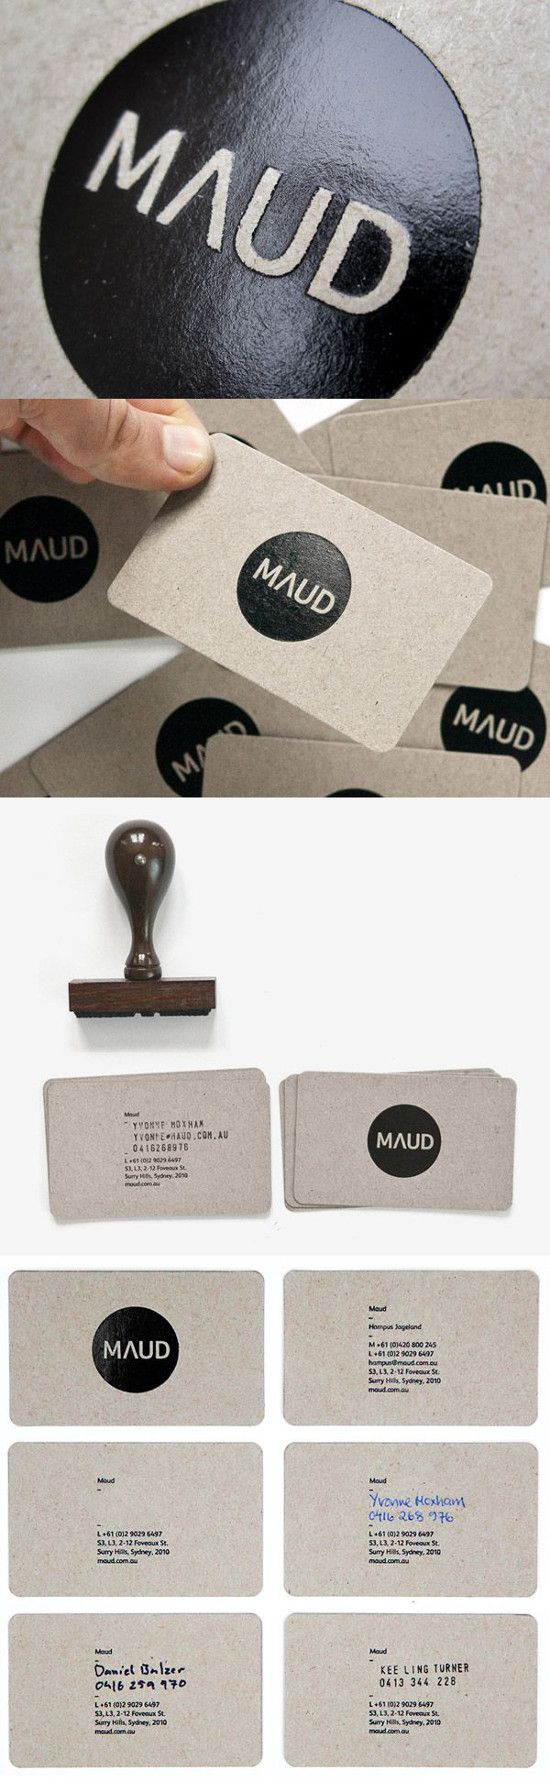 Best 25+ Stamped business cards ideas on Pinterest | Embossed ...